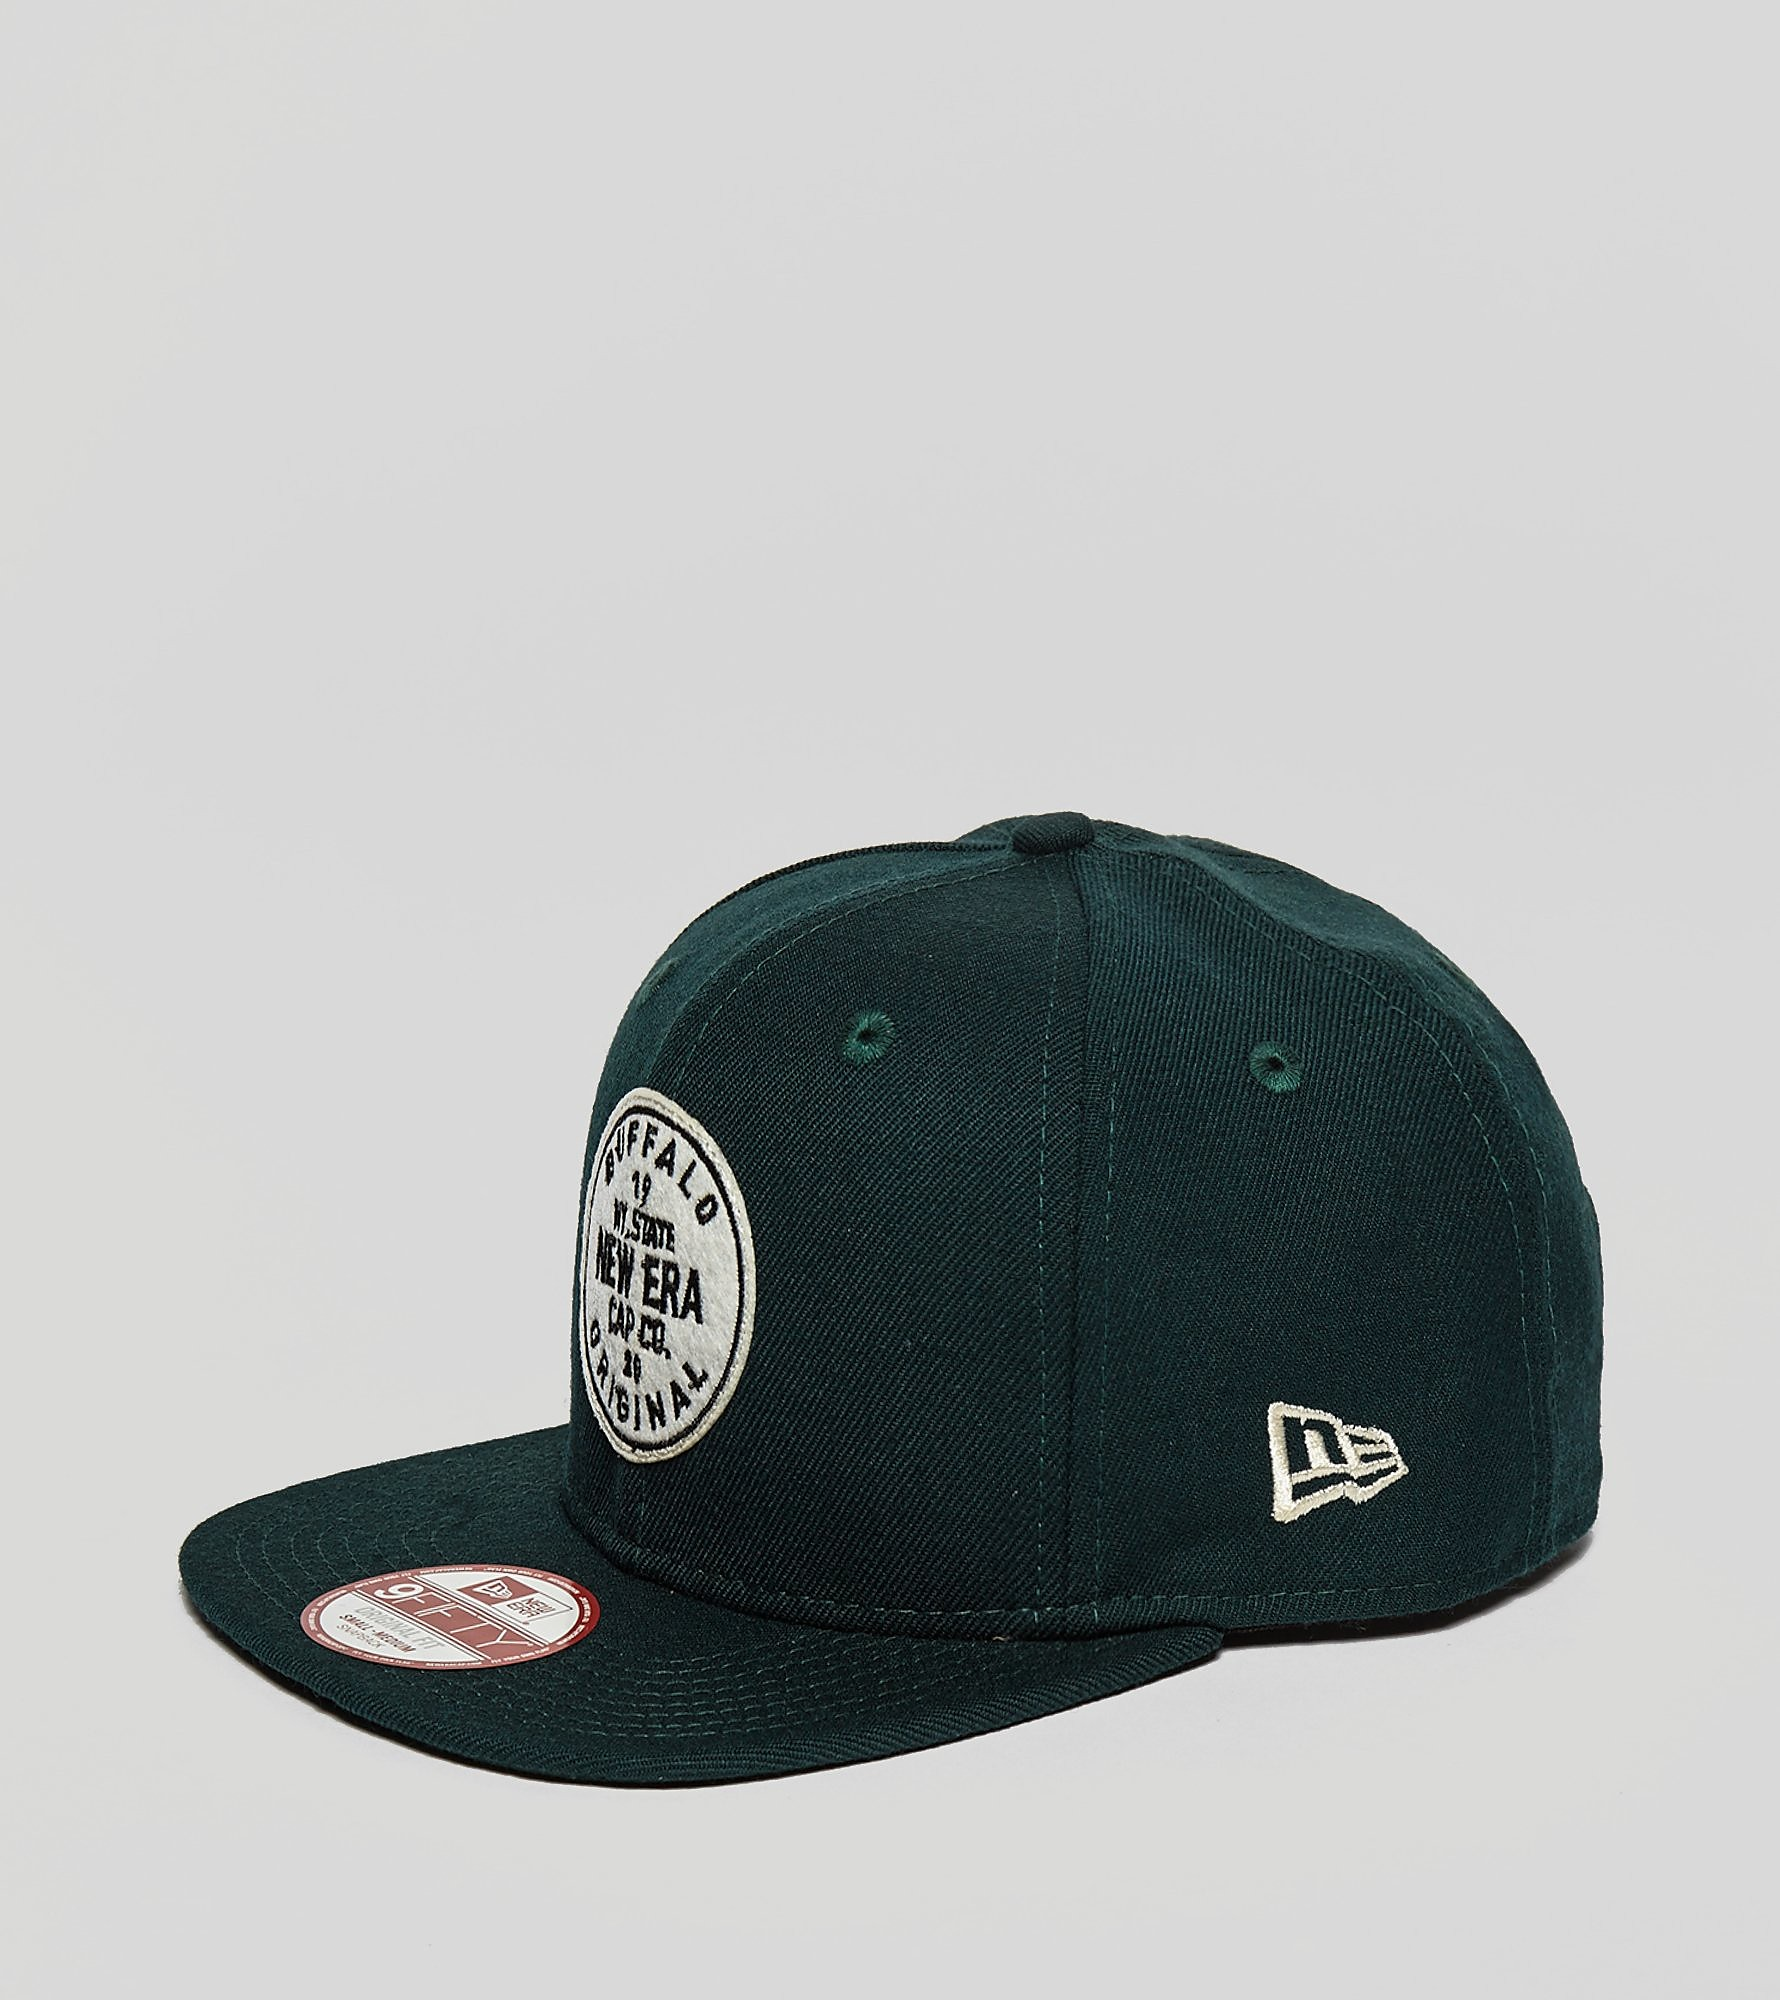 New Era Patch 9FIFTY Snapback Cap - size? Exclusive